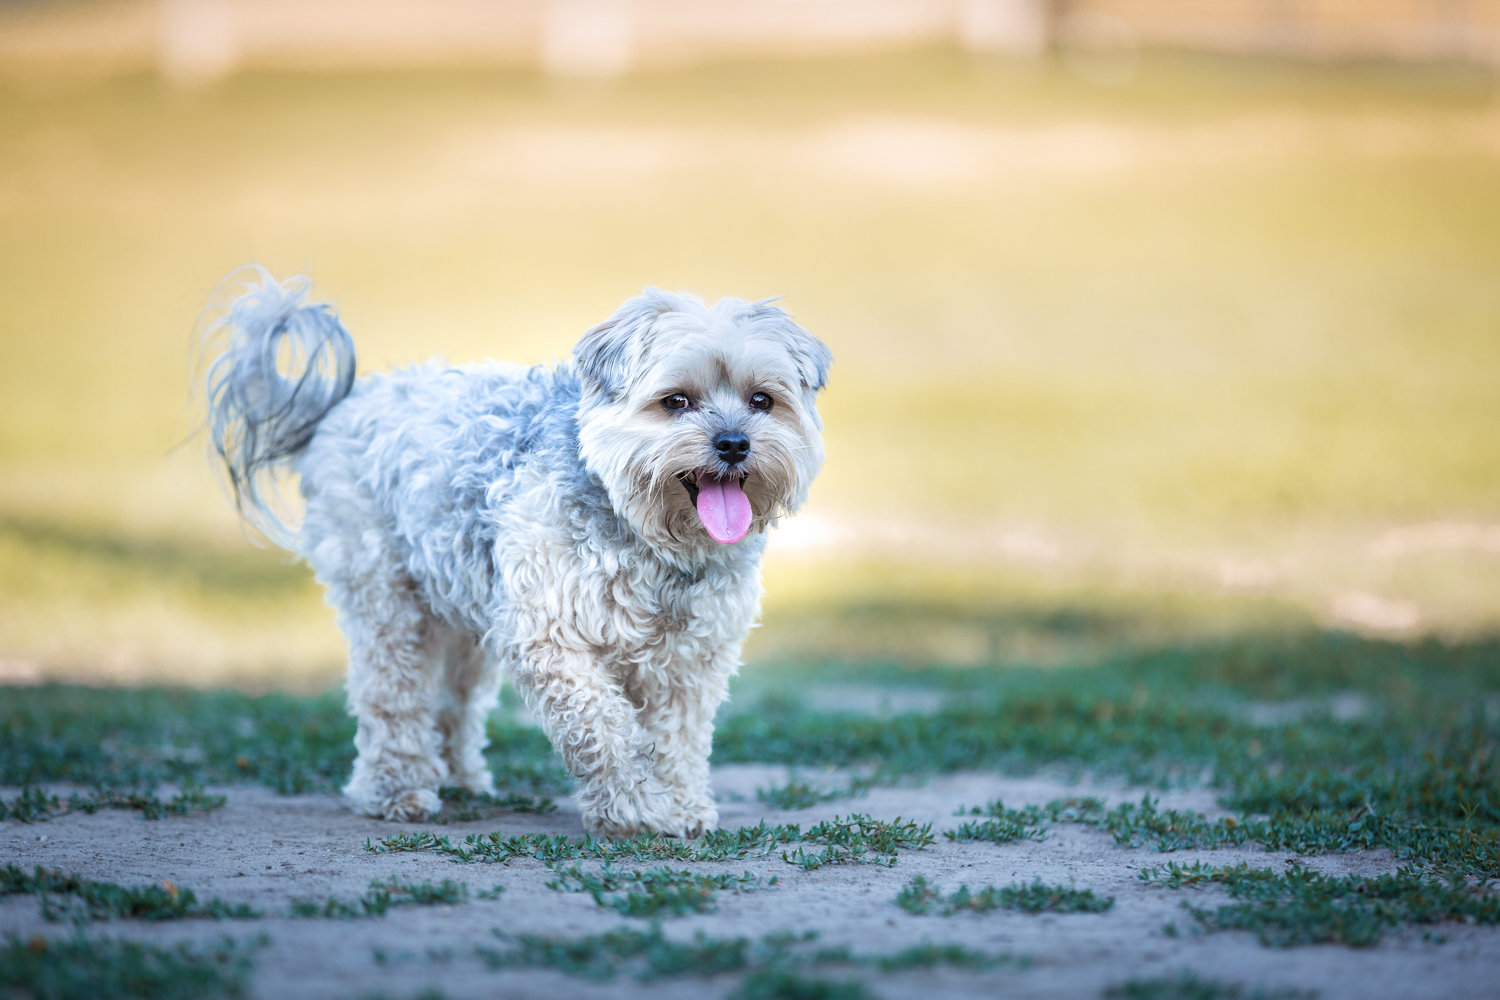 A small fluffy white dog walking. The background is blurred